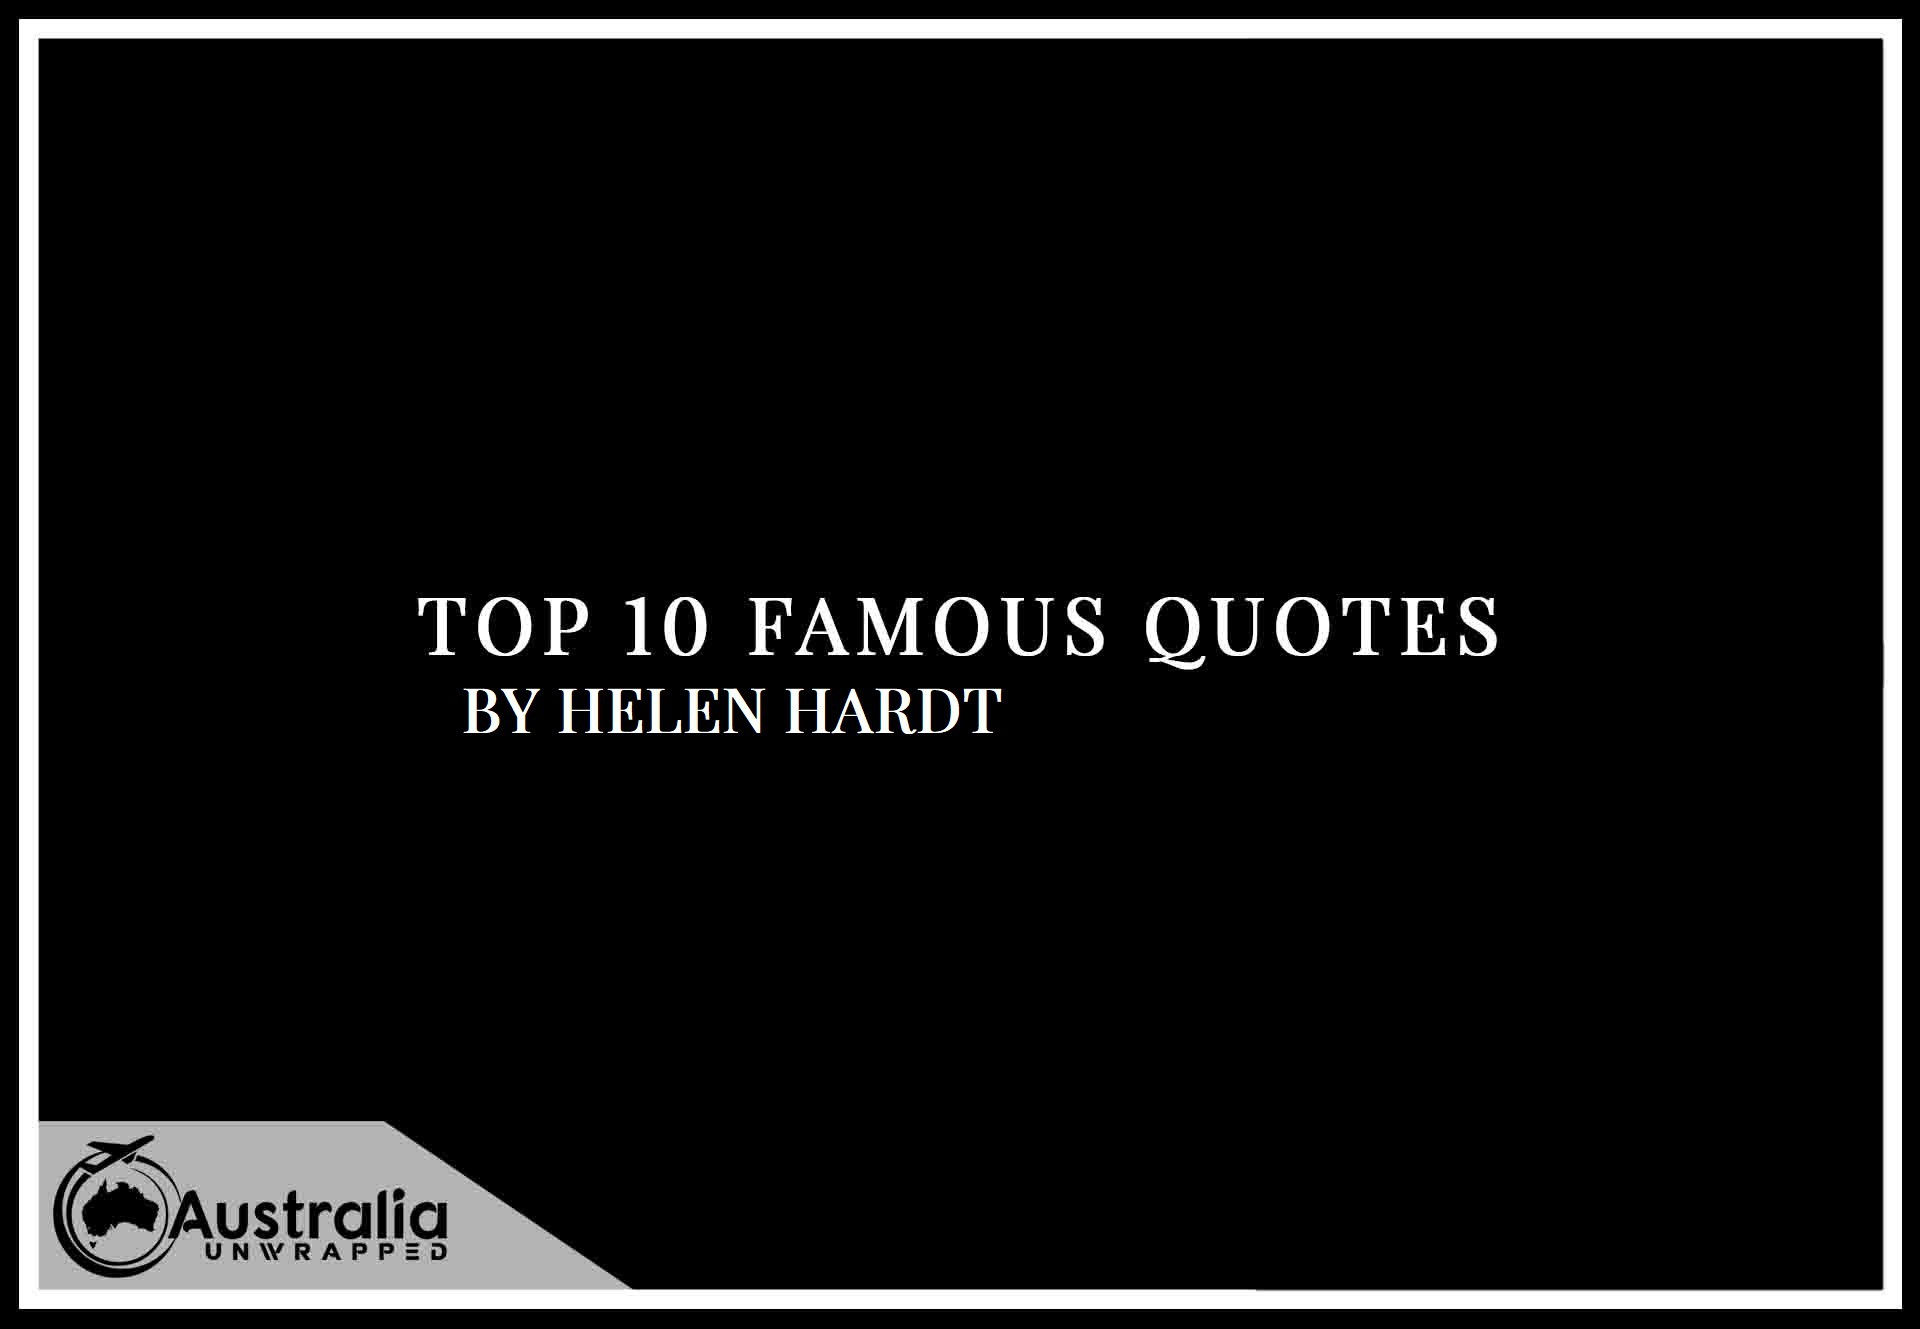 Top 10 Famous Quotes by Author Helen Hardt